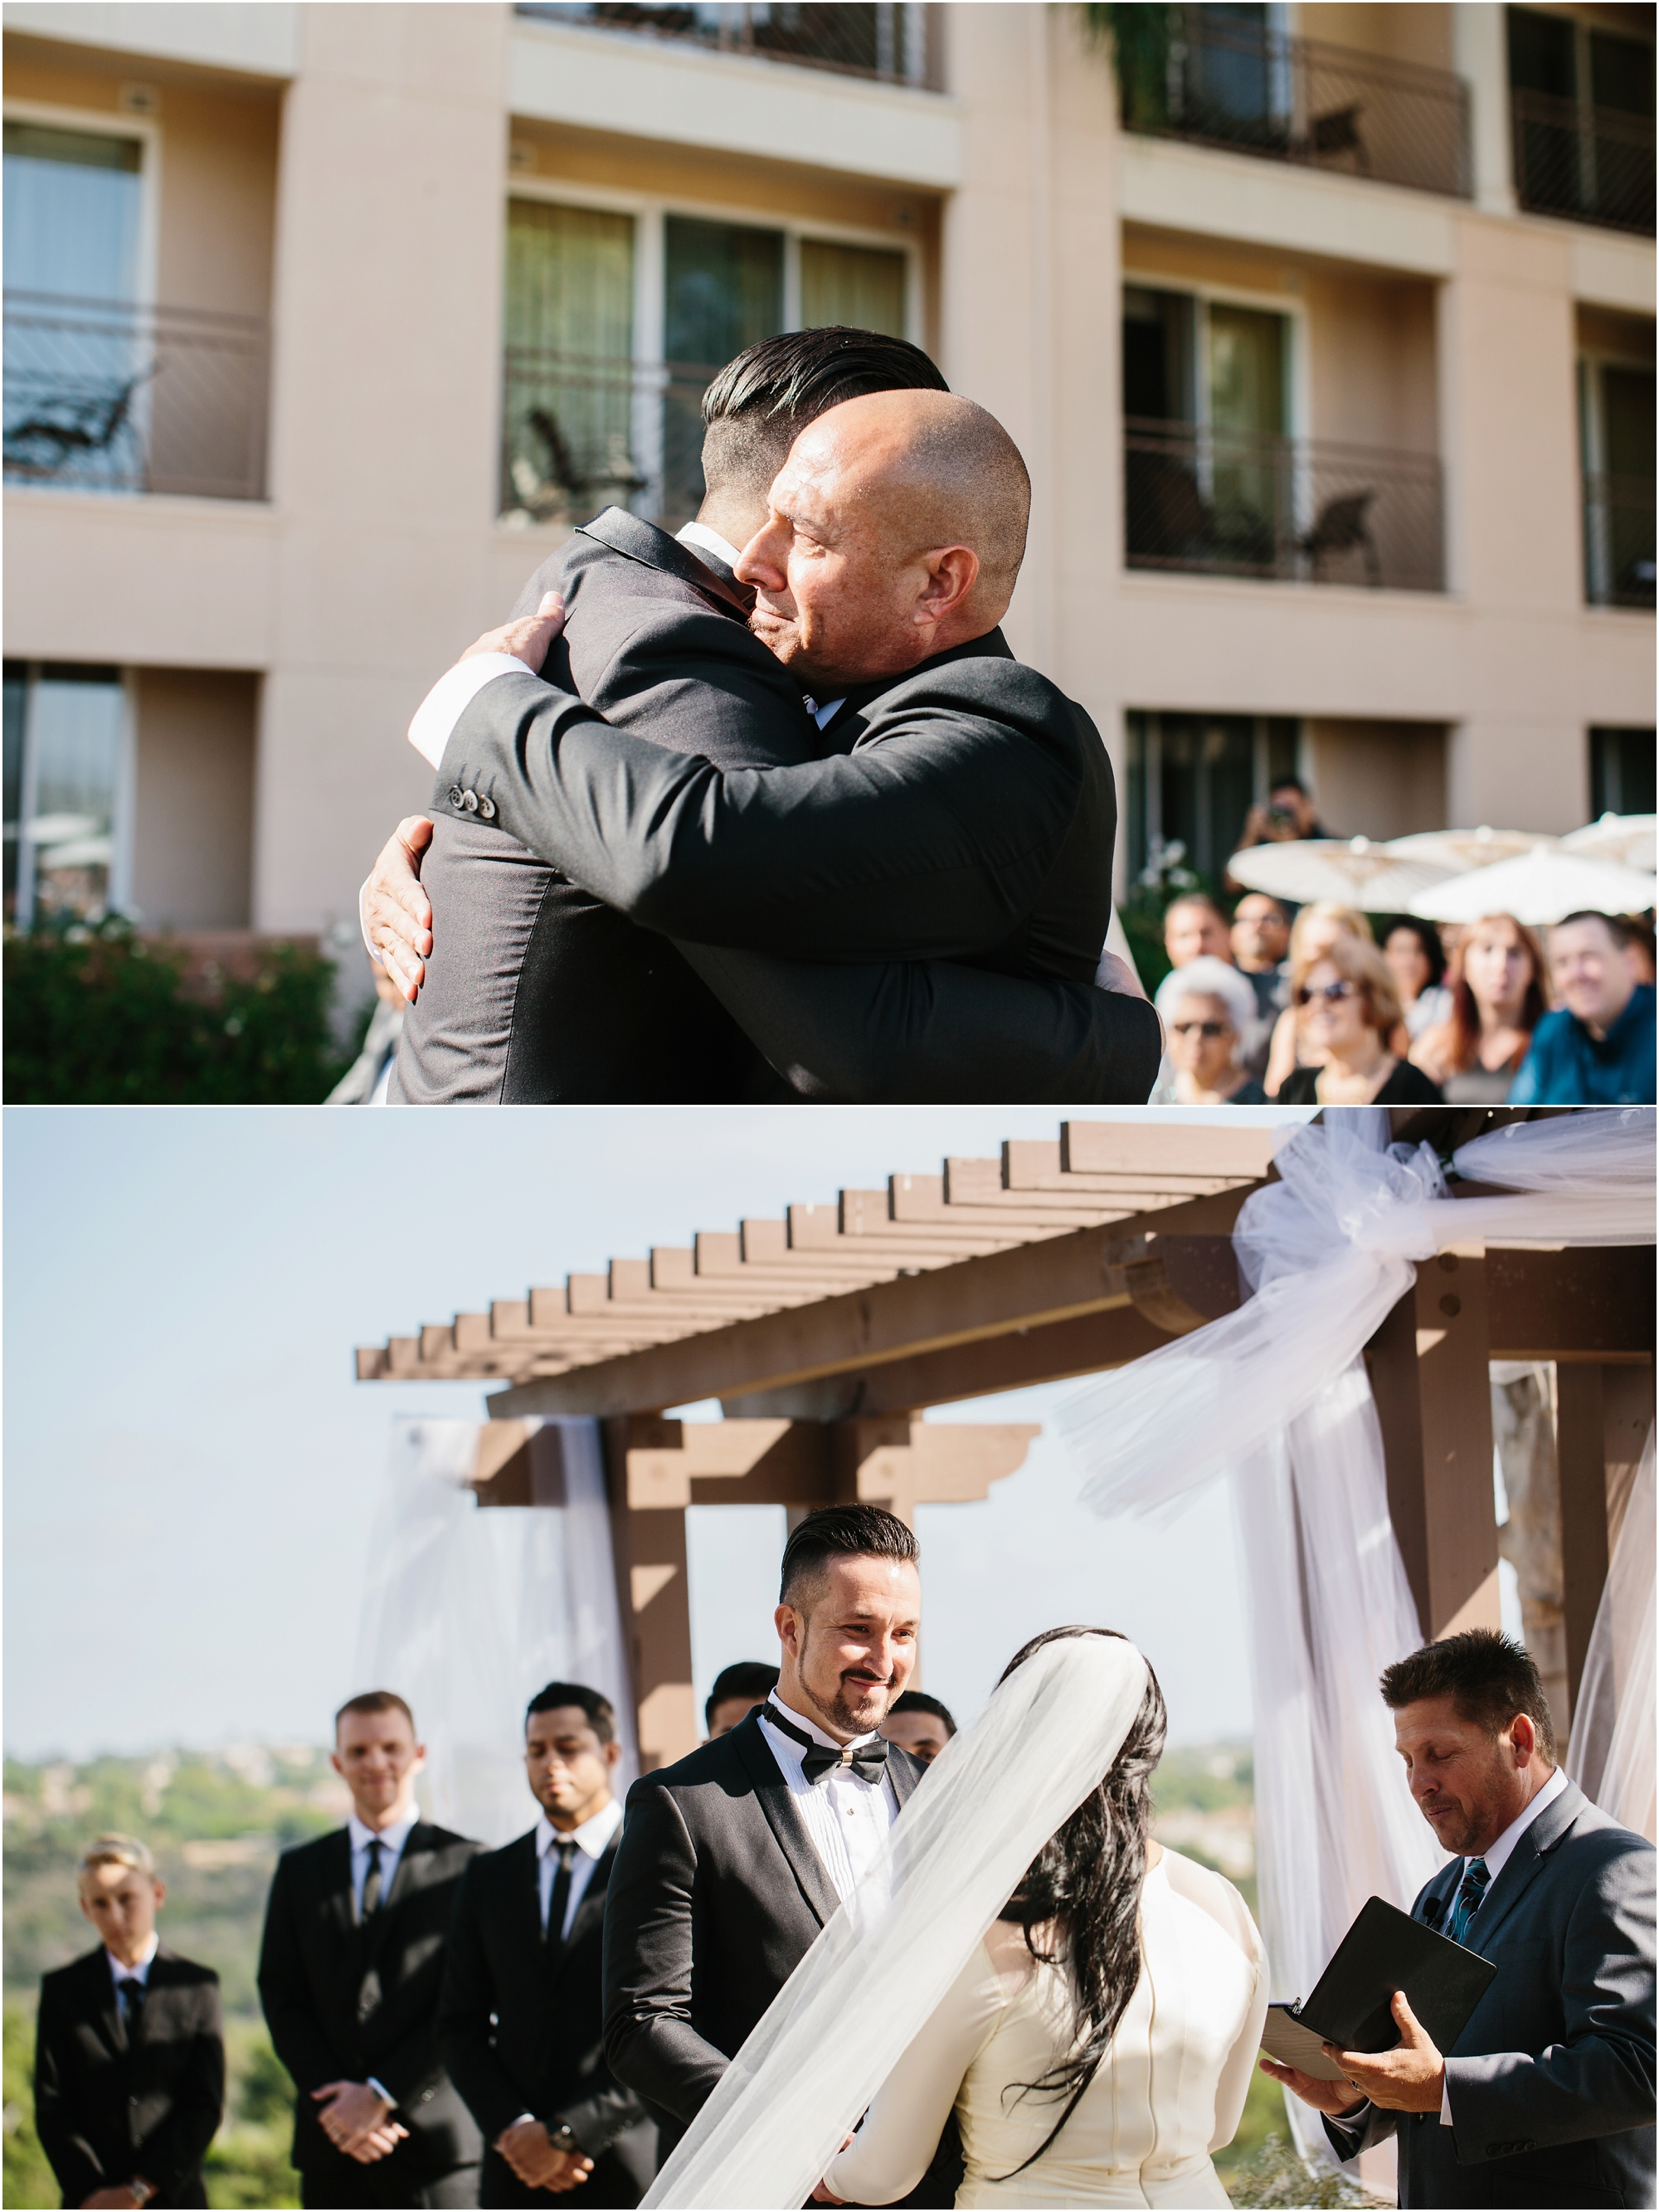 Beautiful San Diego Wedding Ceremony - https://brittneyhannonphotography.com